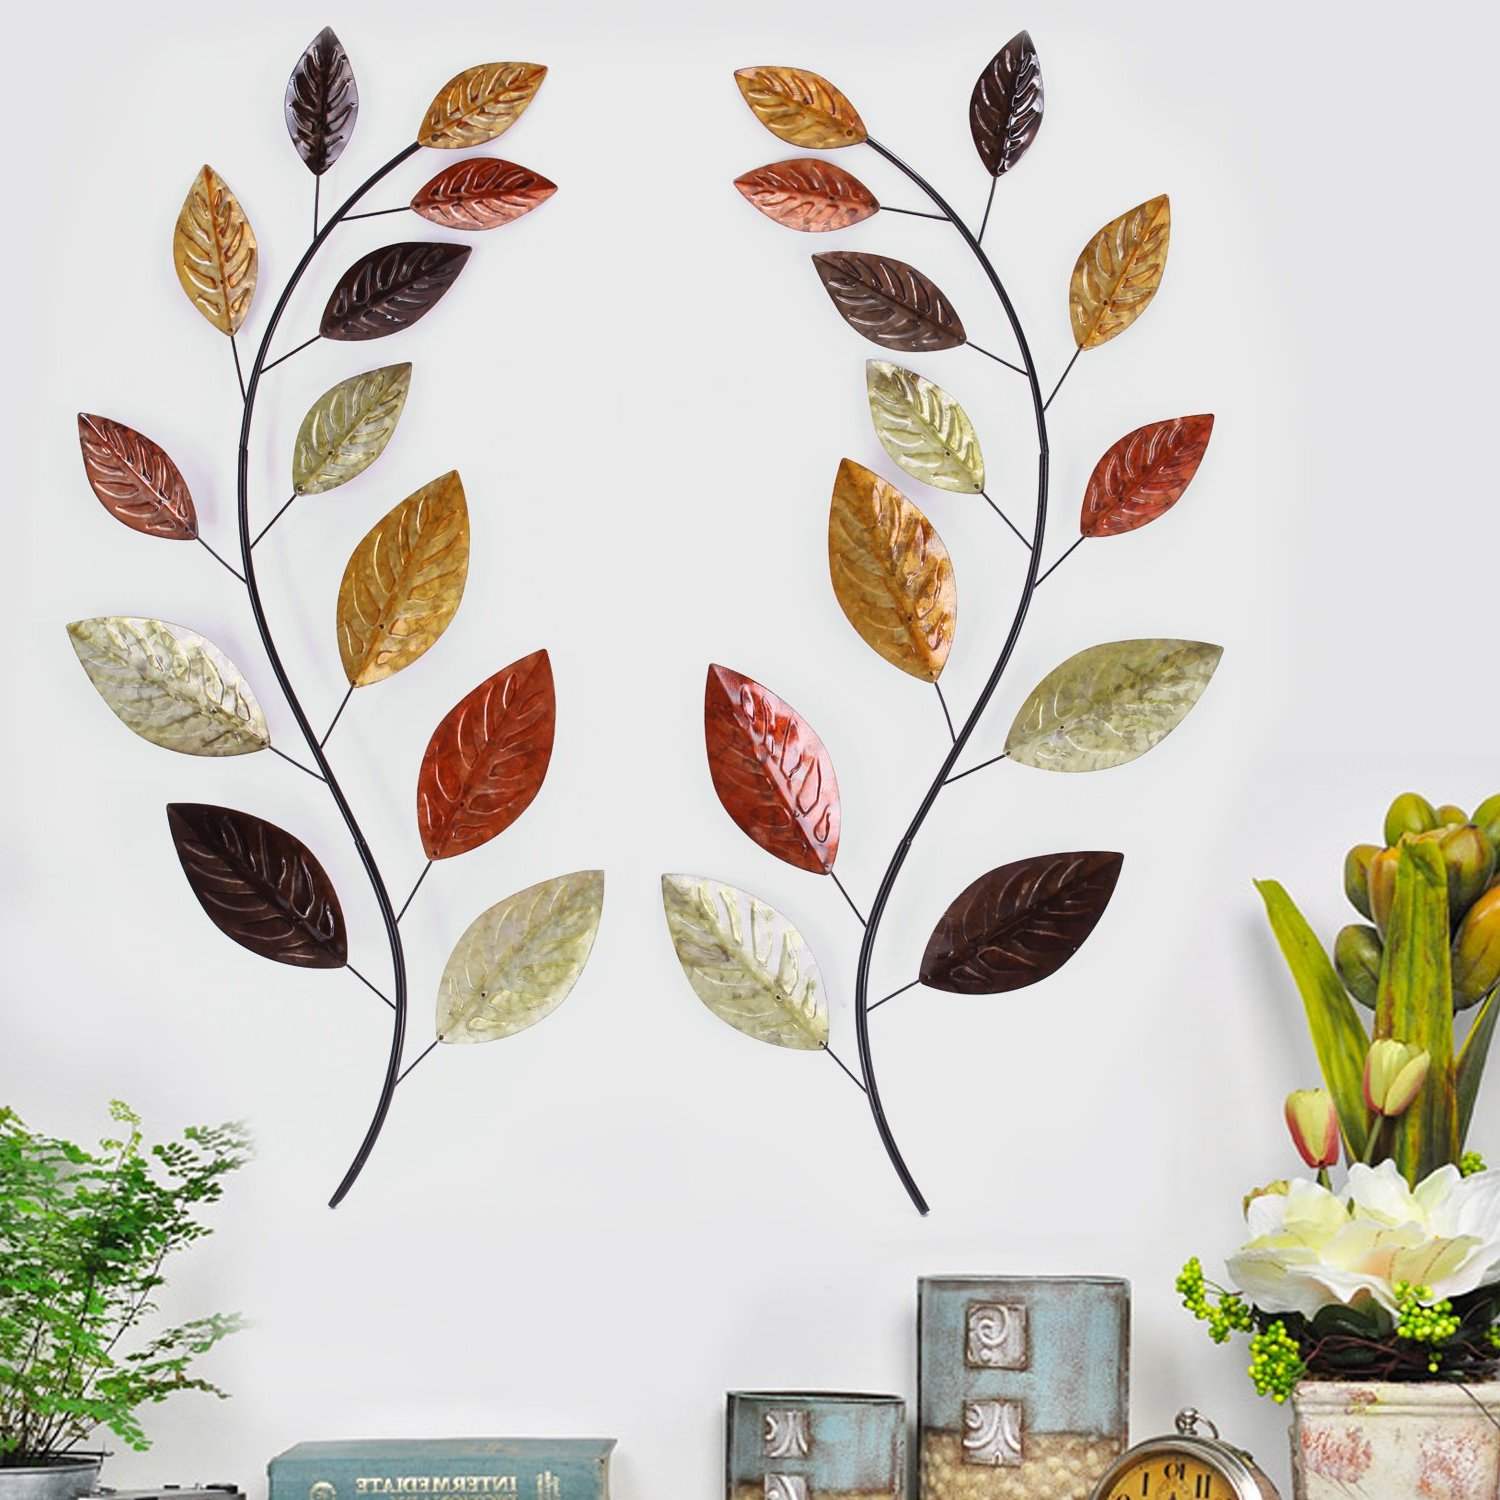 Asense Tree Leaf Metal Wall Art Sculptures Home Decor Life Decoration (Image 1 of 10)